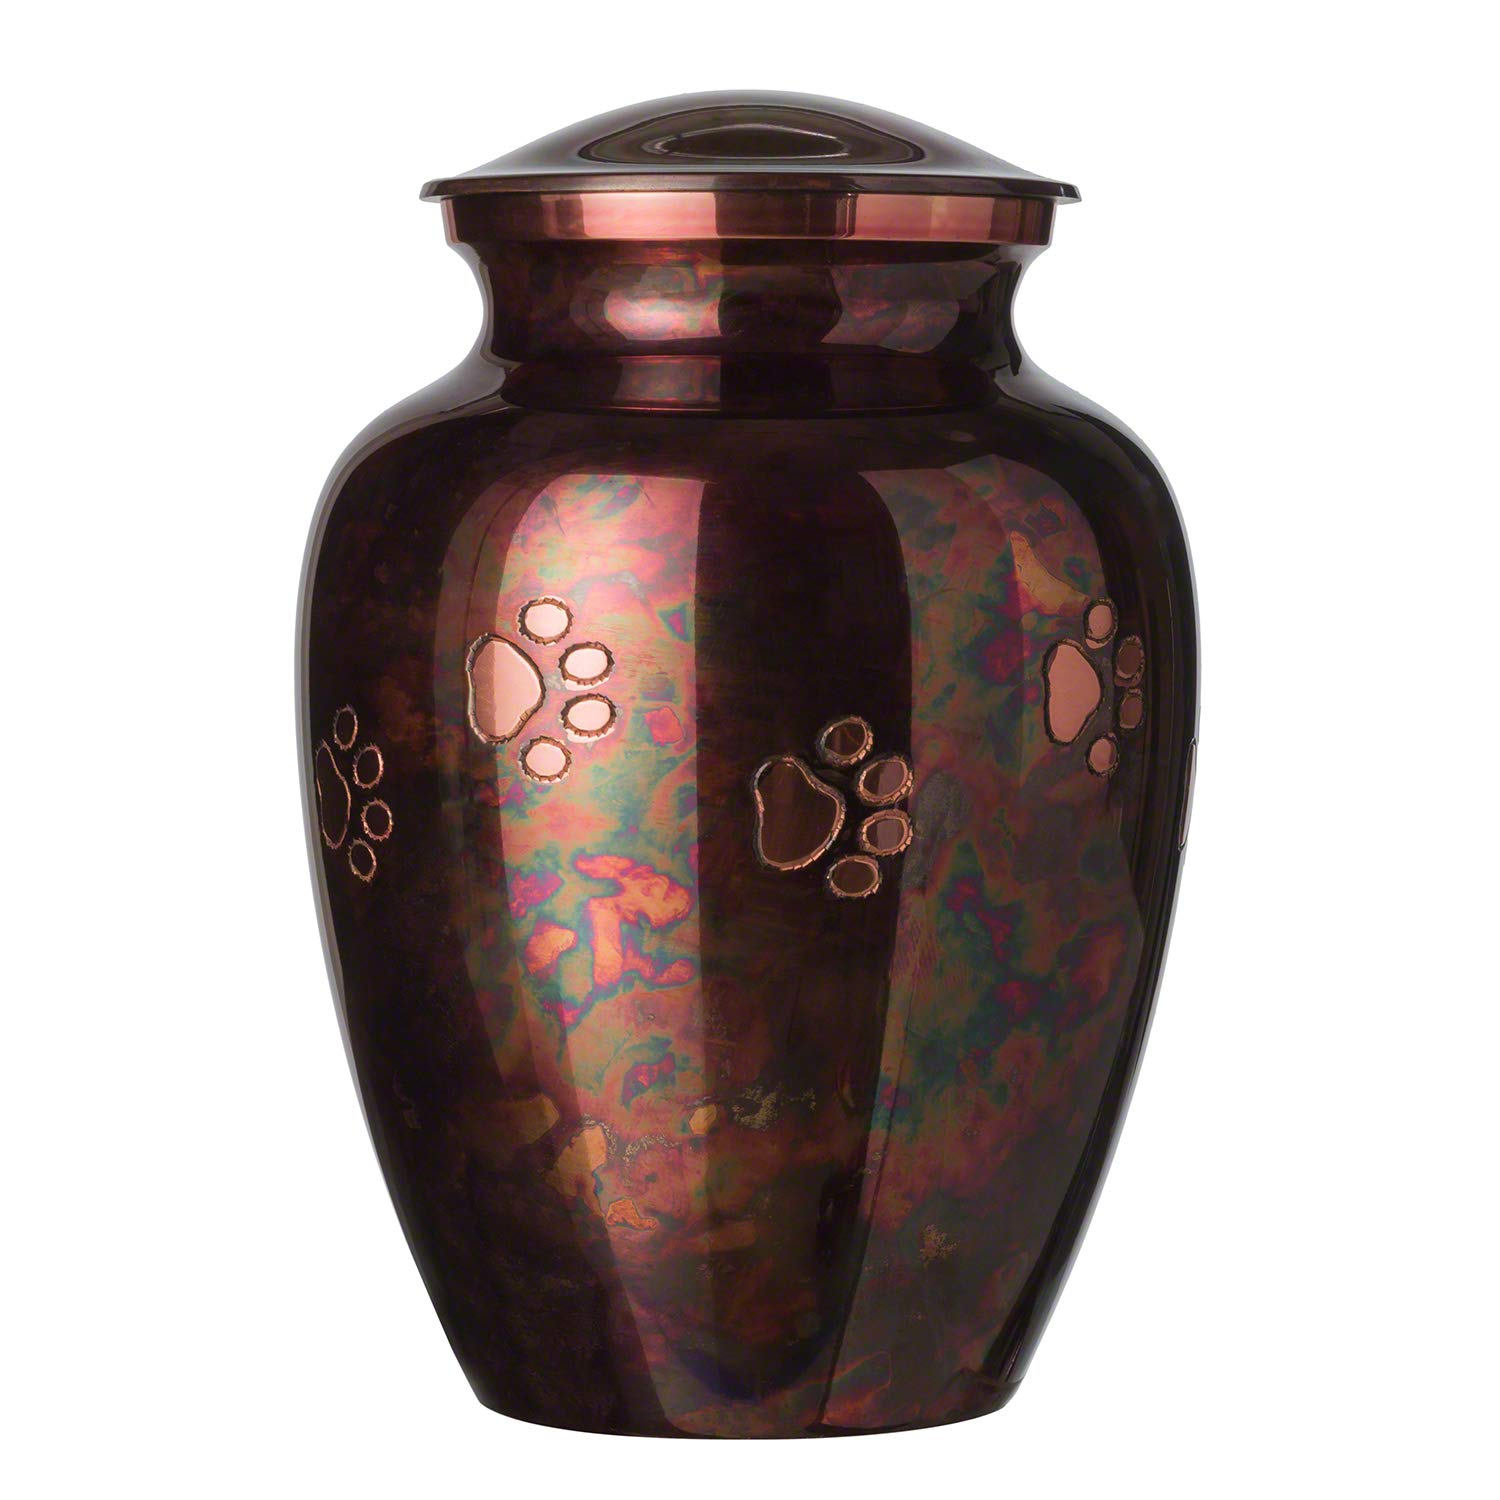 Best Friend Services Ottillie Paws Series Pet Urn Raku Finish with Horizontal Copper Paws (Small)